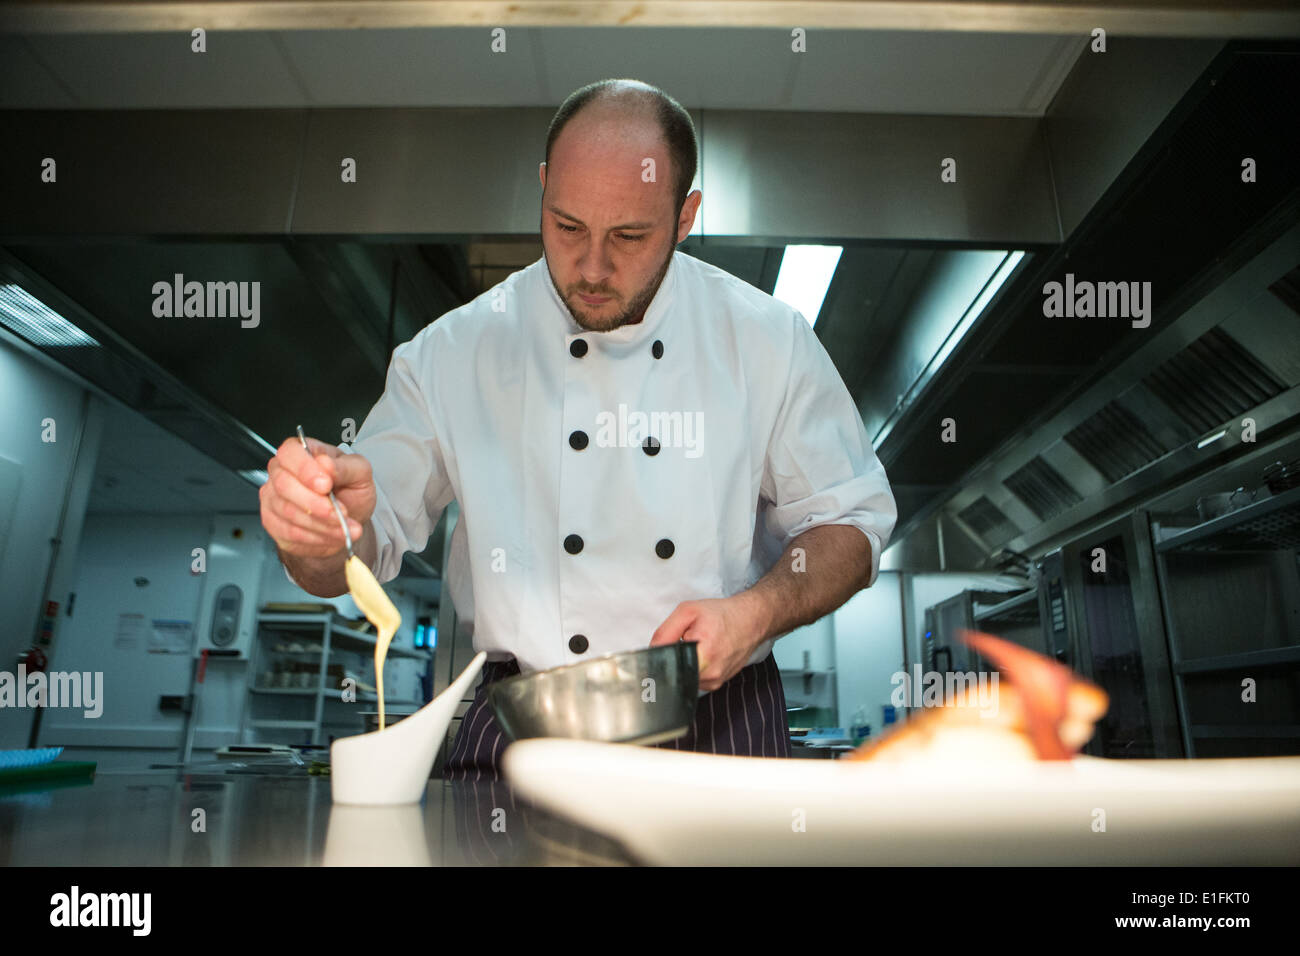 Chef in kitchen preparing a meal cooking pouring sauce Stock Photo ...